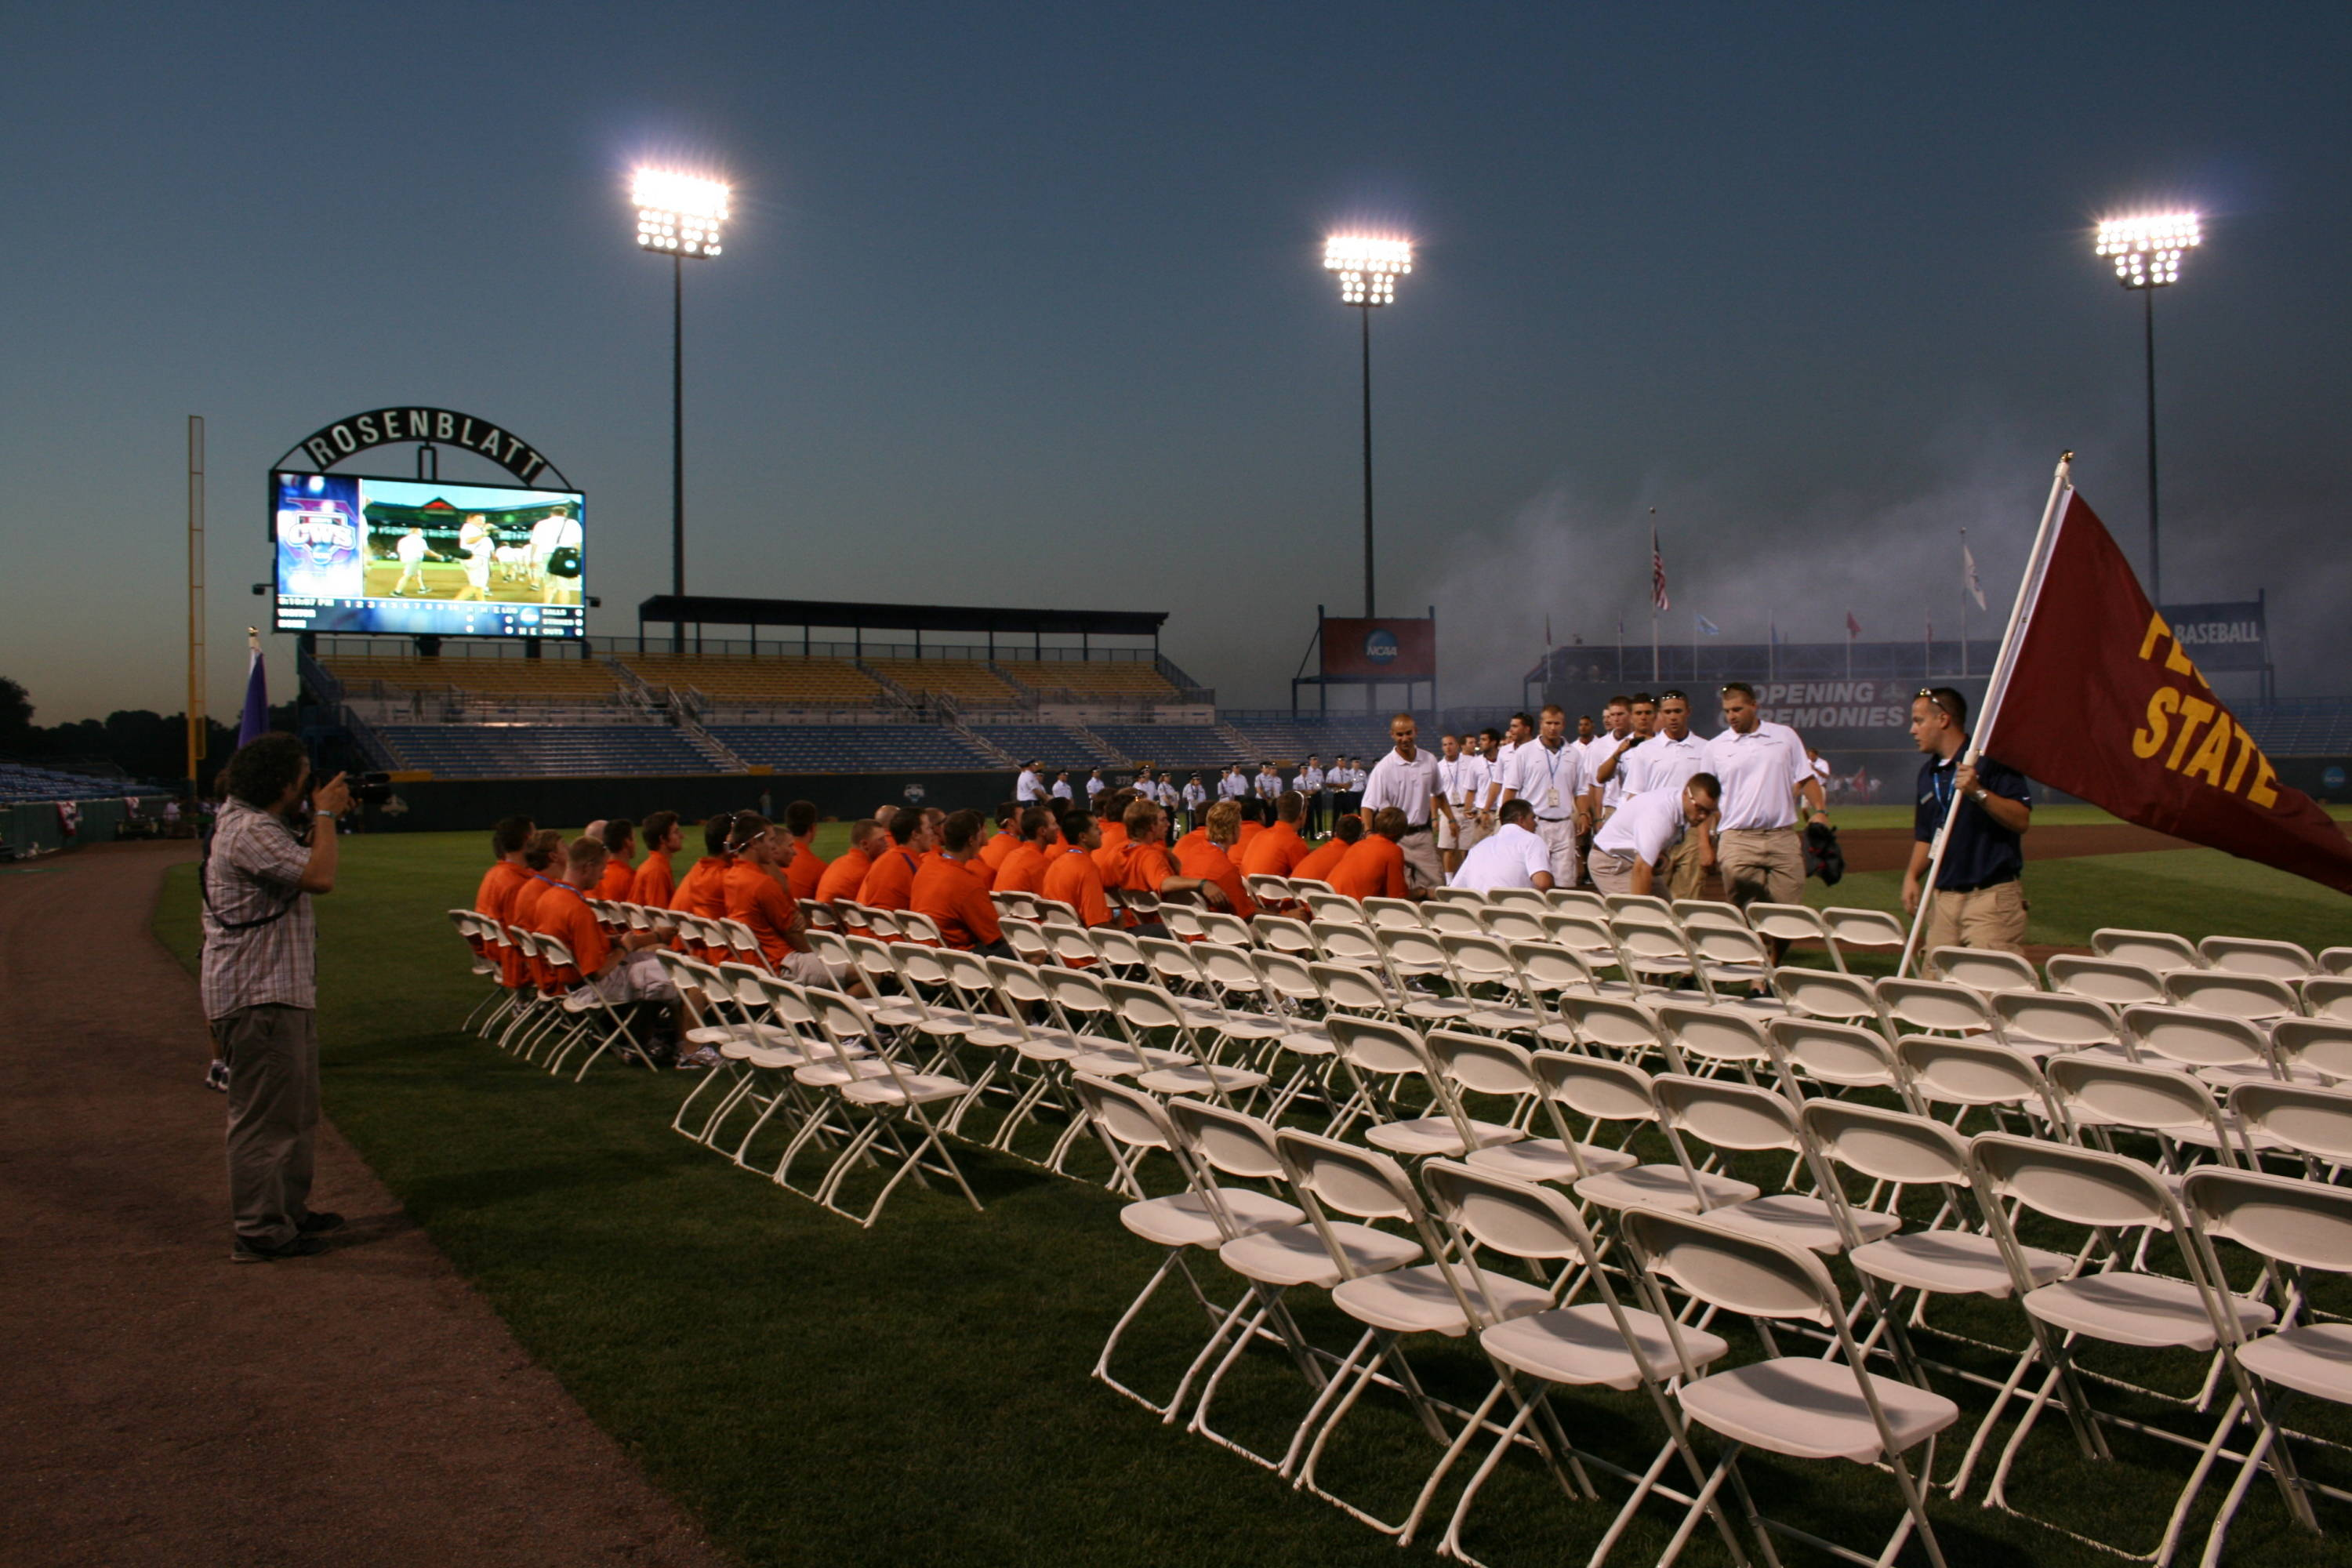 The Seminoles make their entrance into Rosenblatt Stadium for the opening ceremonies.